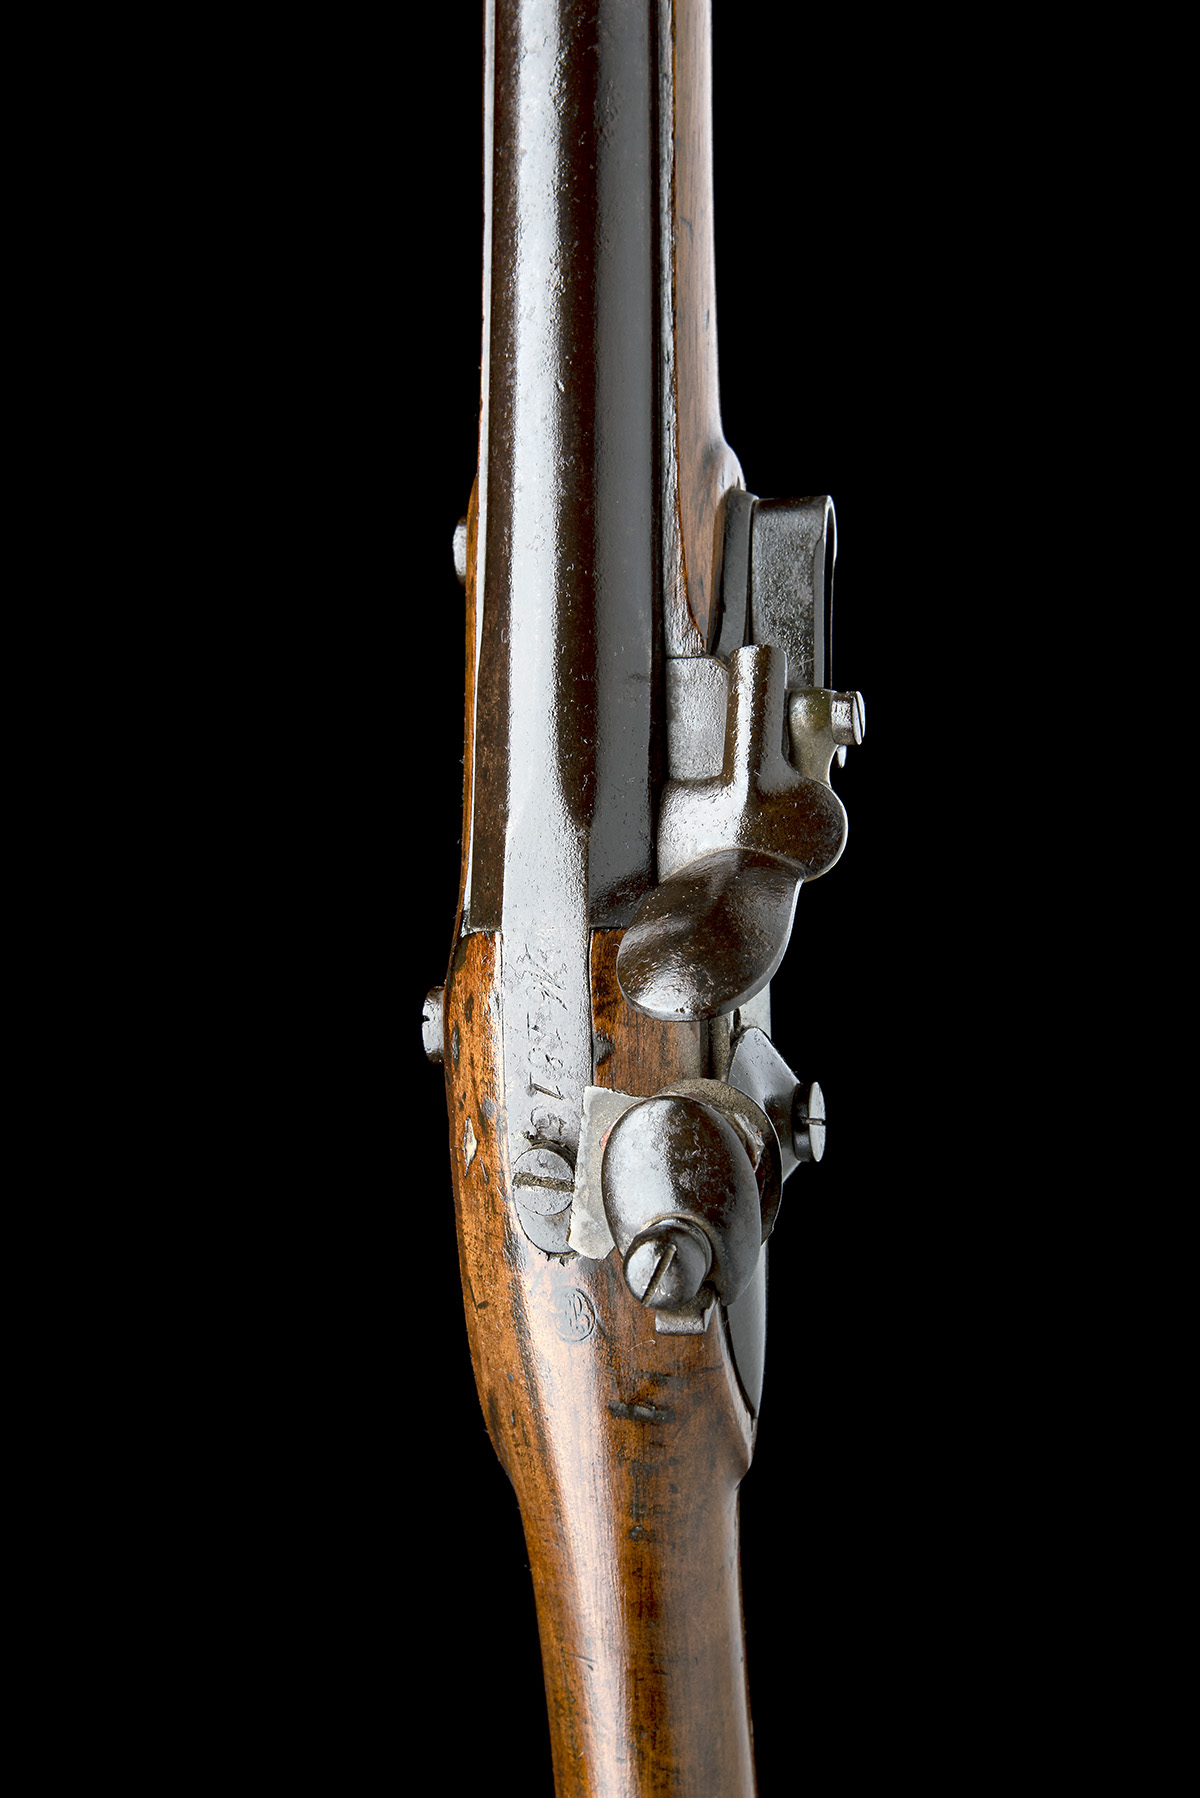 A GOOD .69 FLINTLOCK MUSKET, UNSIGNED, MODEL 'BELGIAN M1815 CHARLEVILLE', serial no. M2178, dated - Image 7 of 8